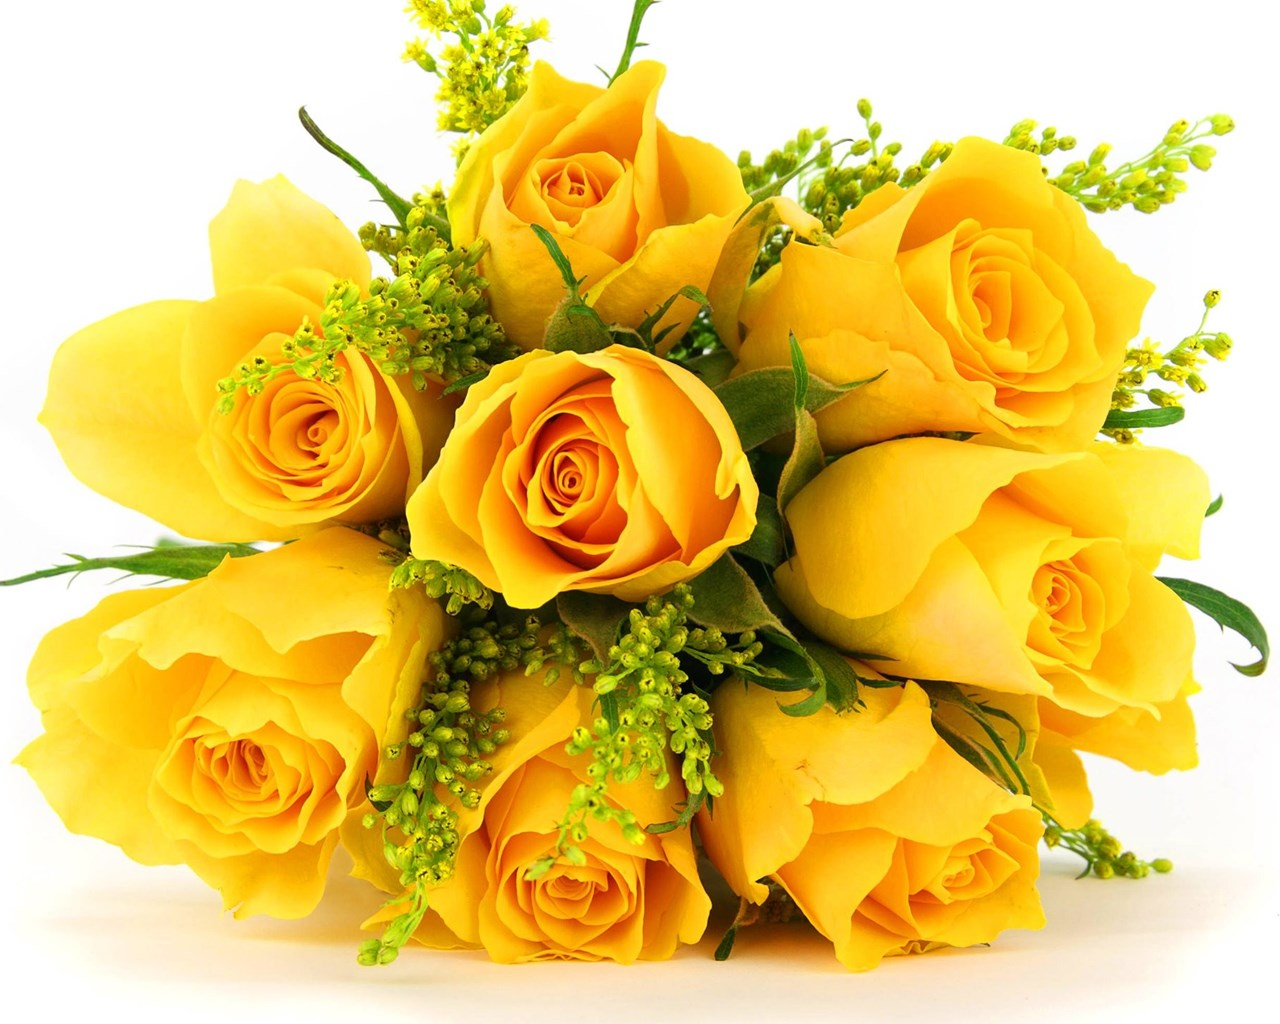 Yellow Rose Wallpapers Hd Pictures Download Hd Flowers Desktop